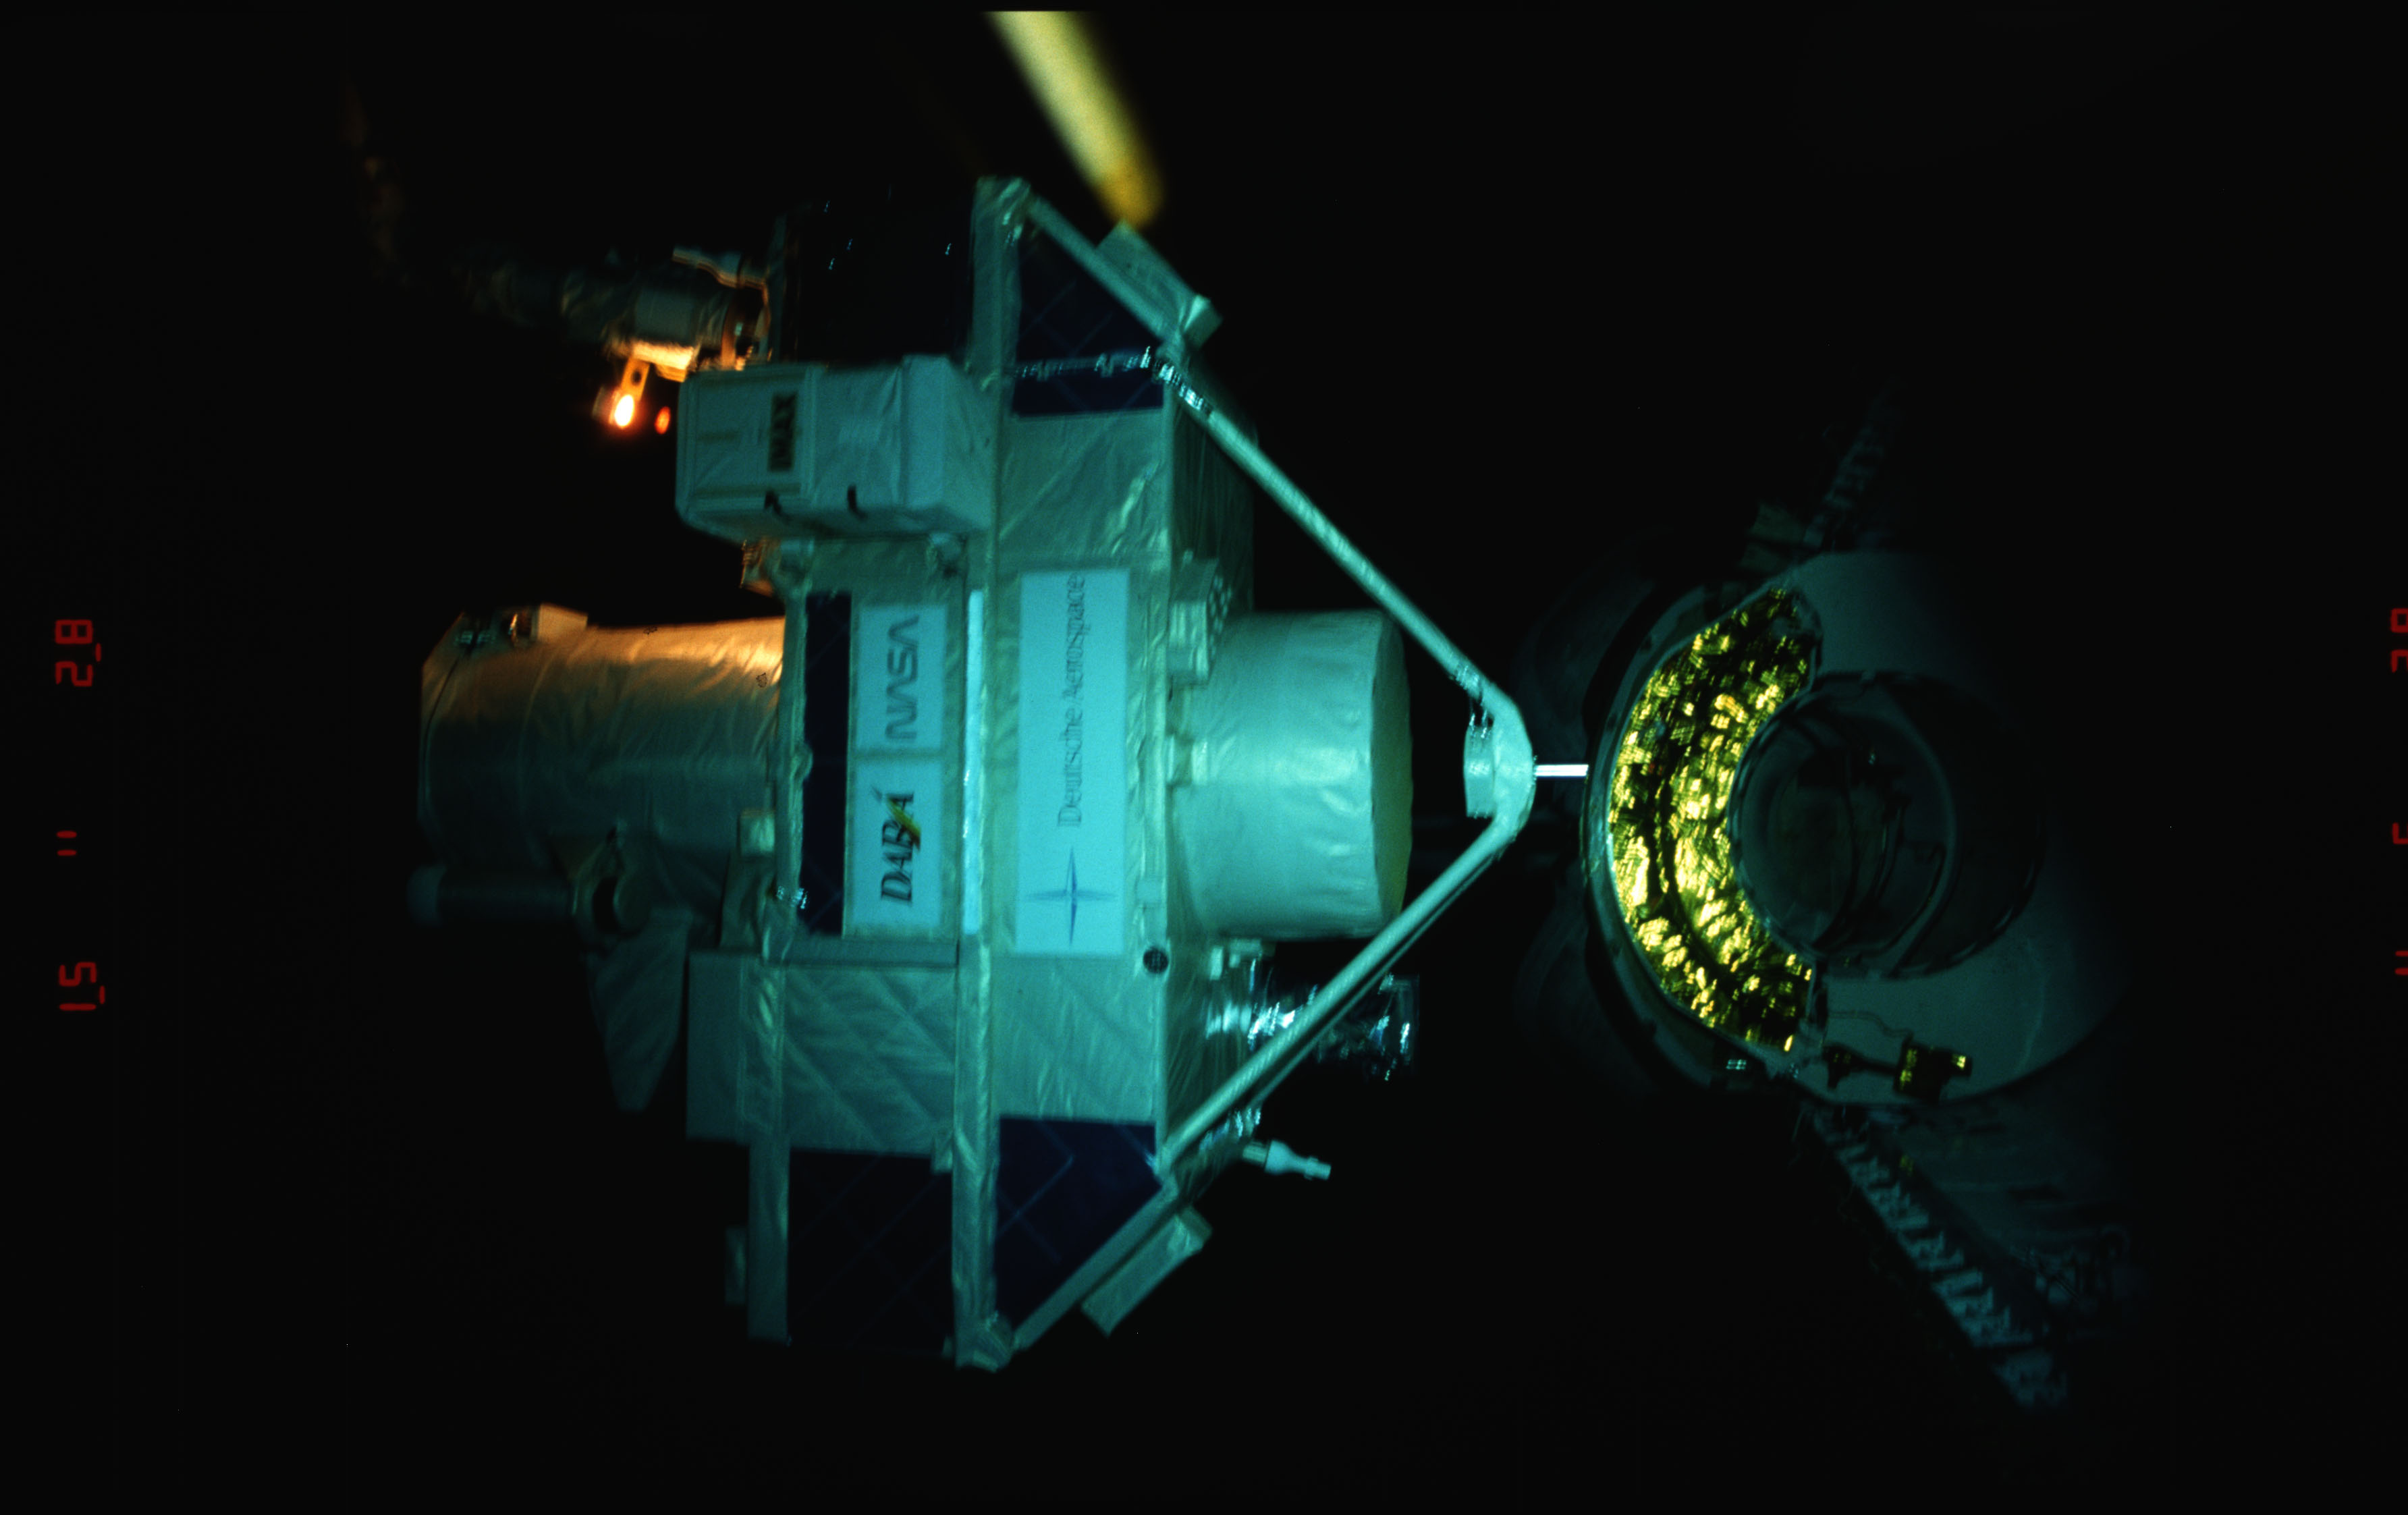 STS051-15-025 - STS-051 - OREFEUS-SPAS: ORFEUS-SPAS hovers over the payload bay on RMS